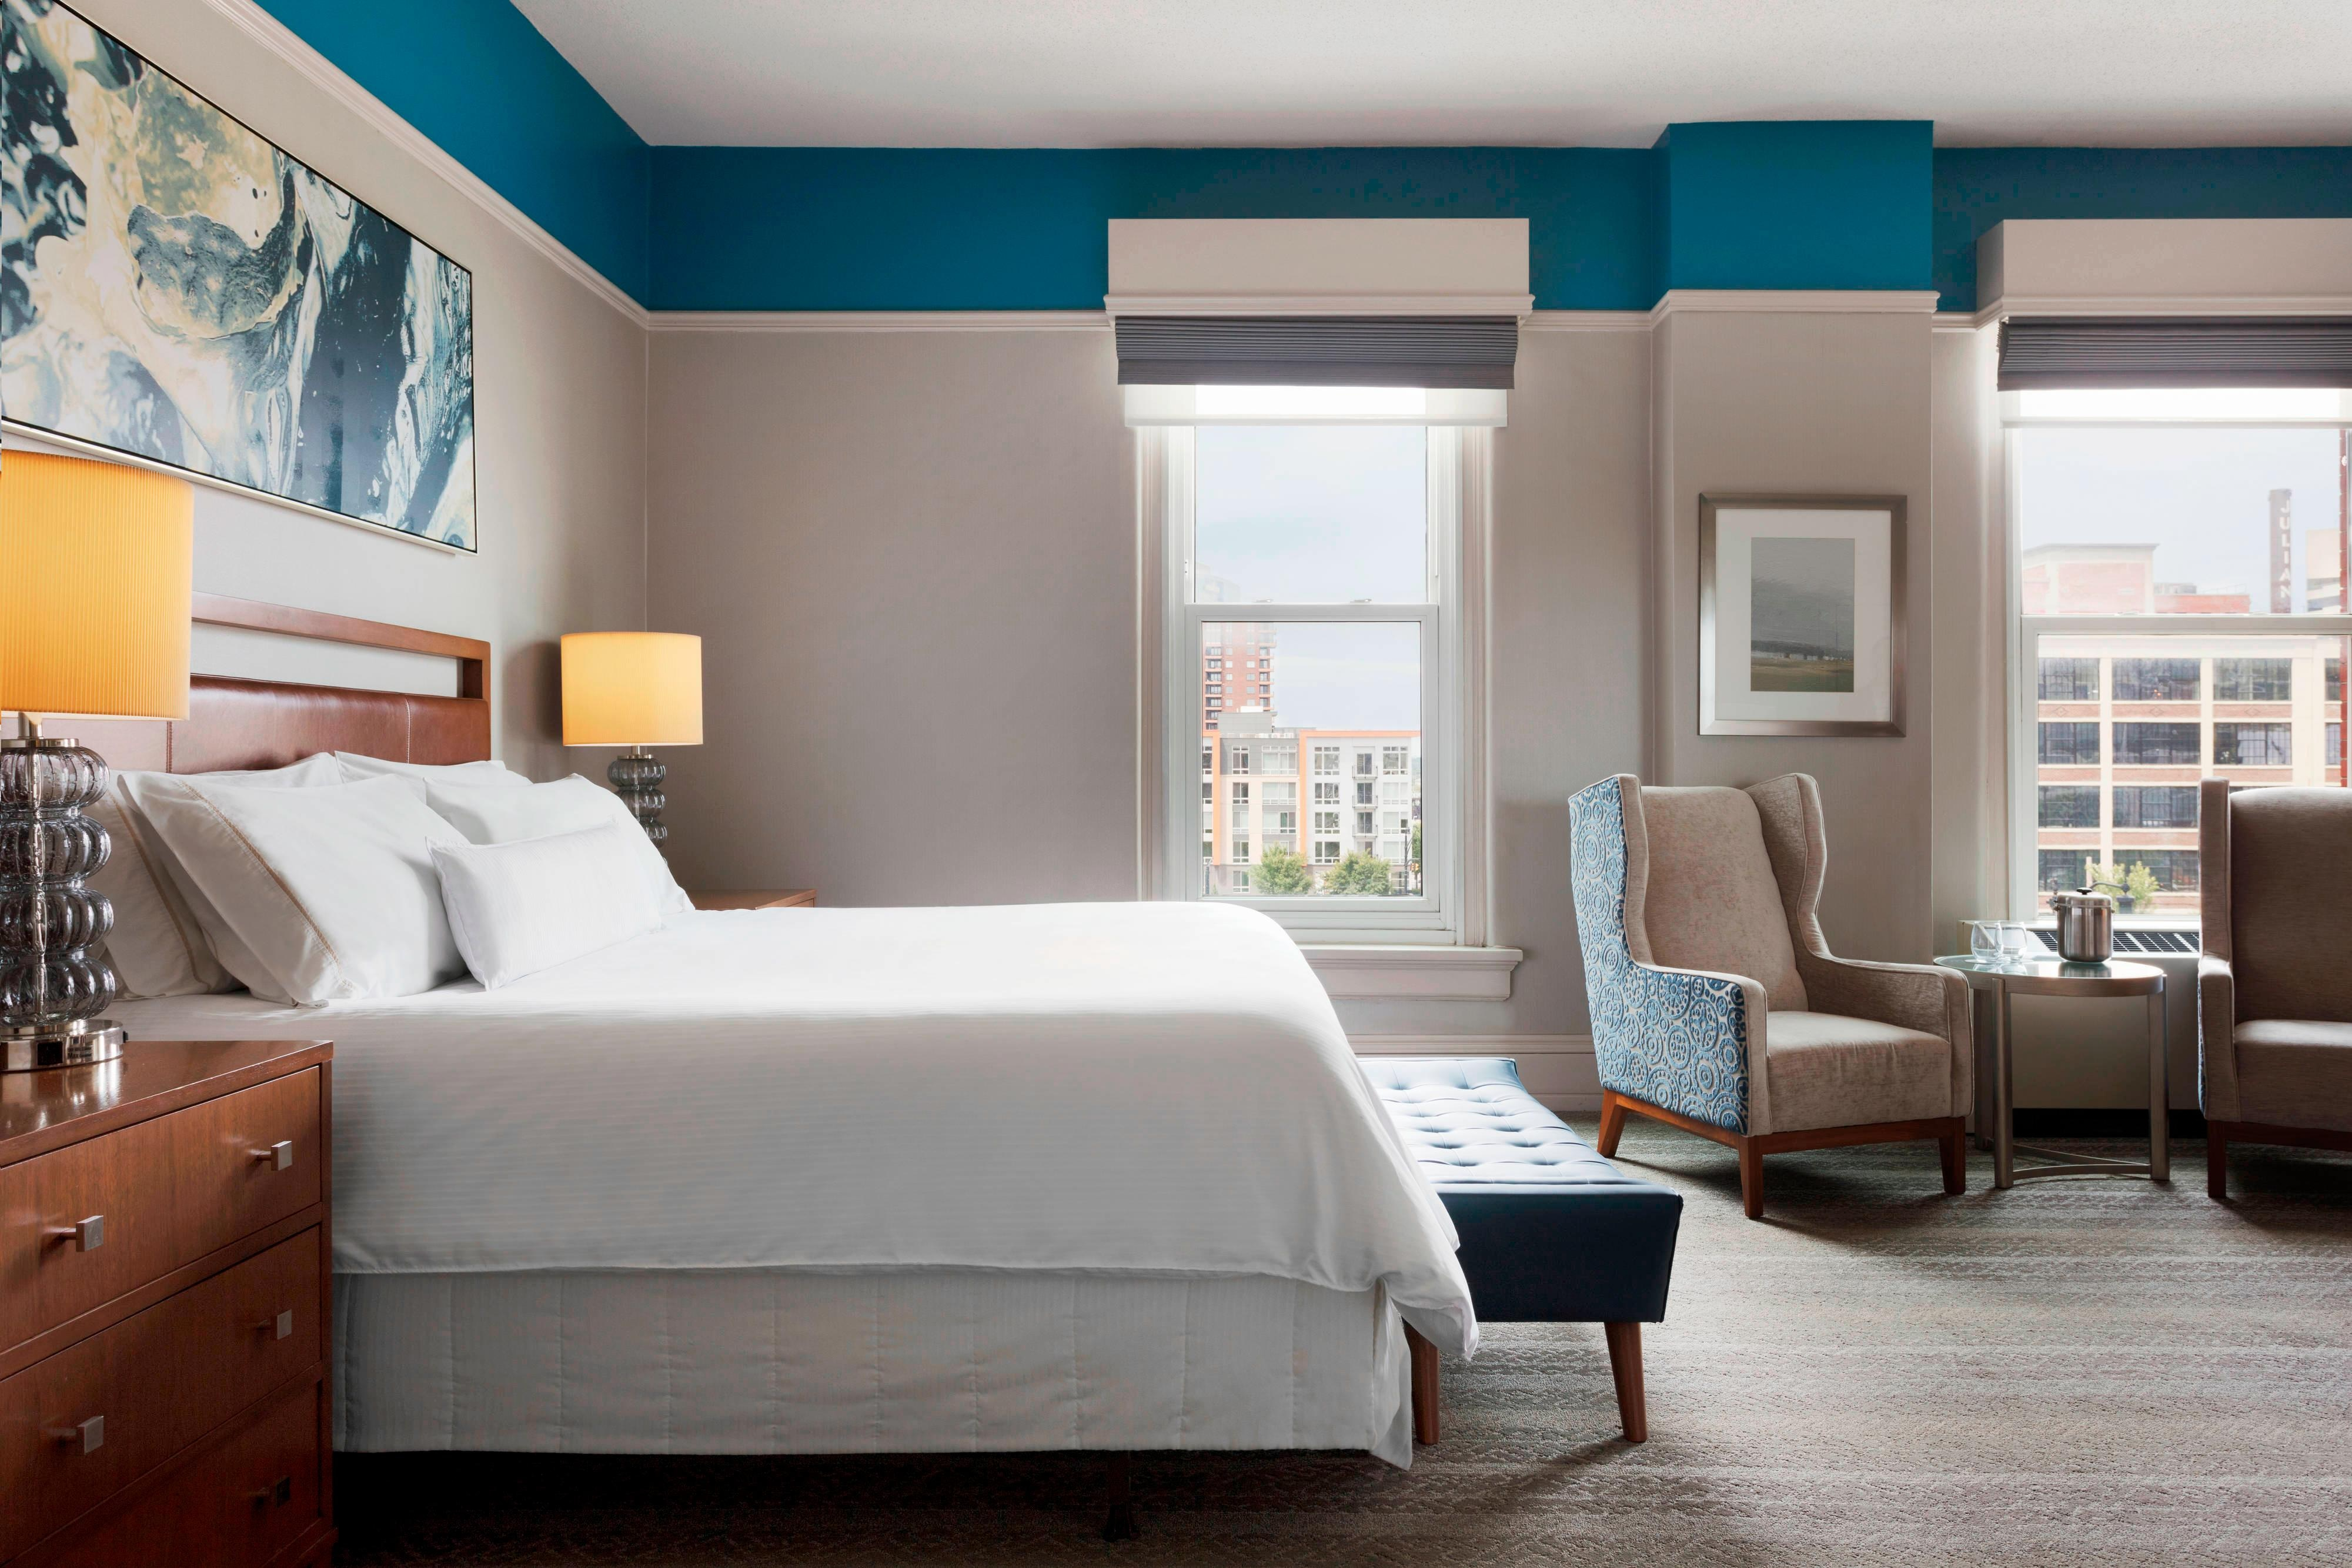 Brewery District Hotel Rooms Columbus Ohio The Westin